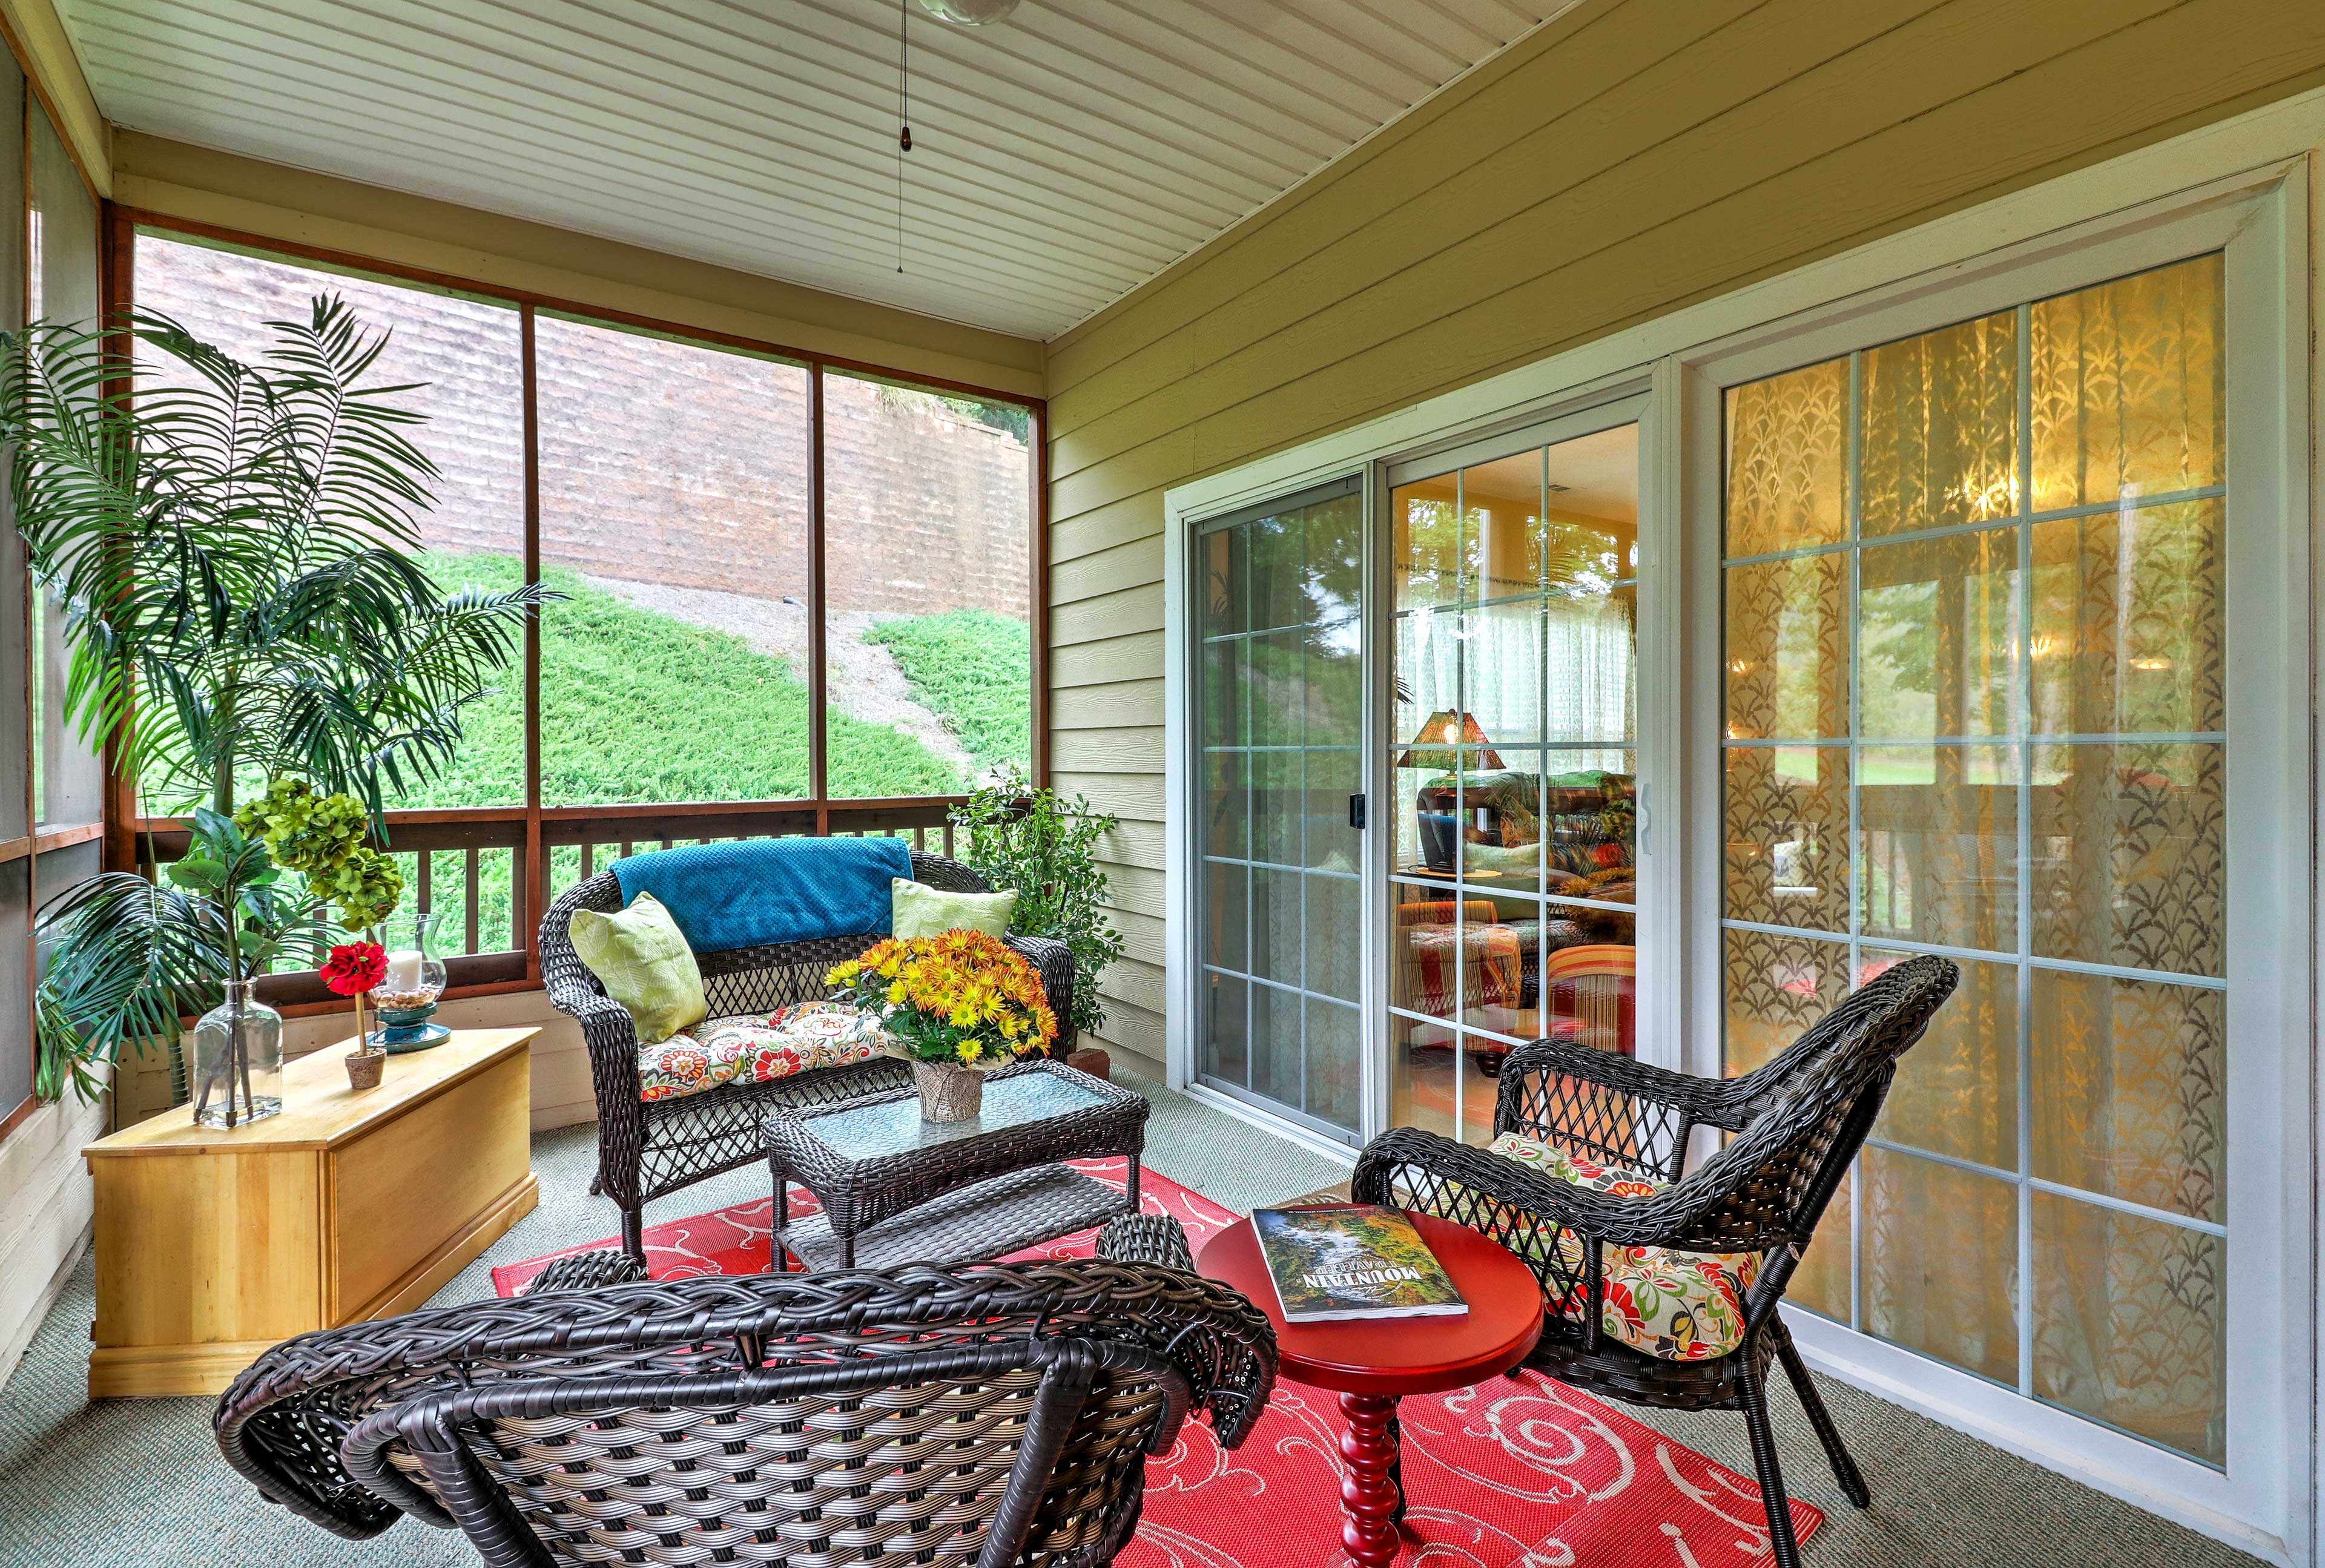 Sip your morning coffee and make plans for the day in the screened-in sunroom.